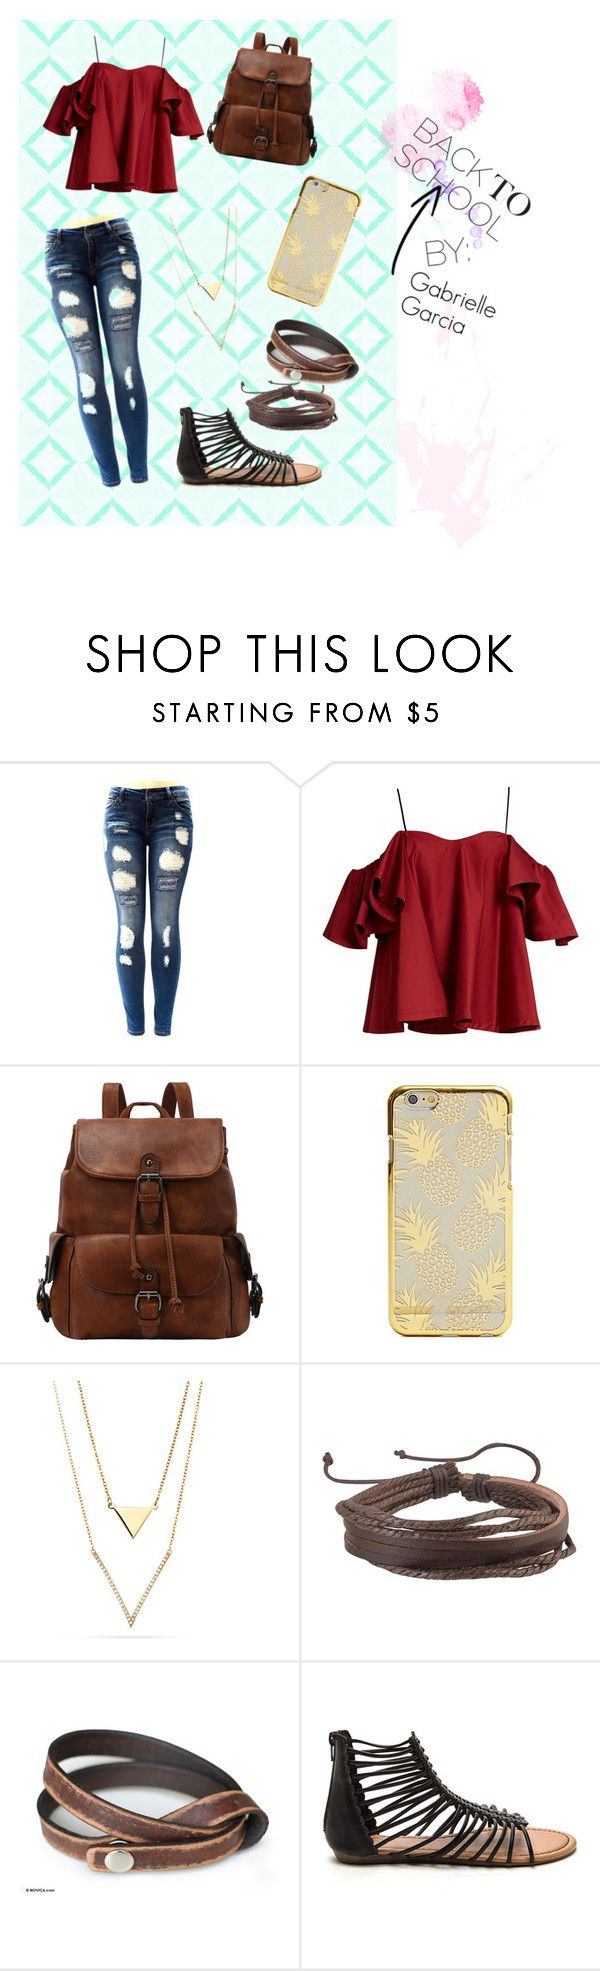 """Back to School Series I Gabrielle Garcia"" by asdfgabbyy on Polyvore featuring Anna October, Zodaca, NOVICA, school and asdfgabbyfashion"